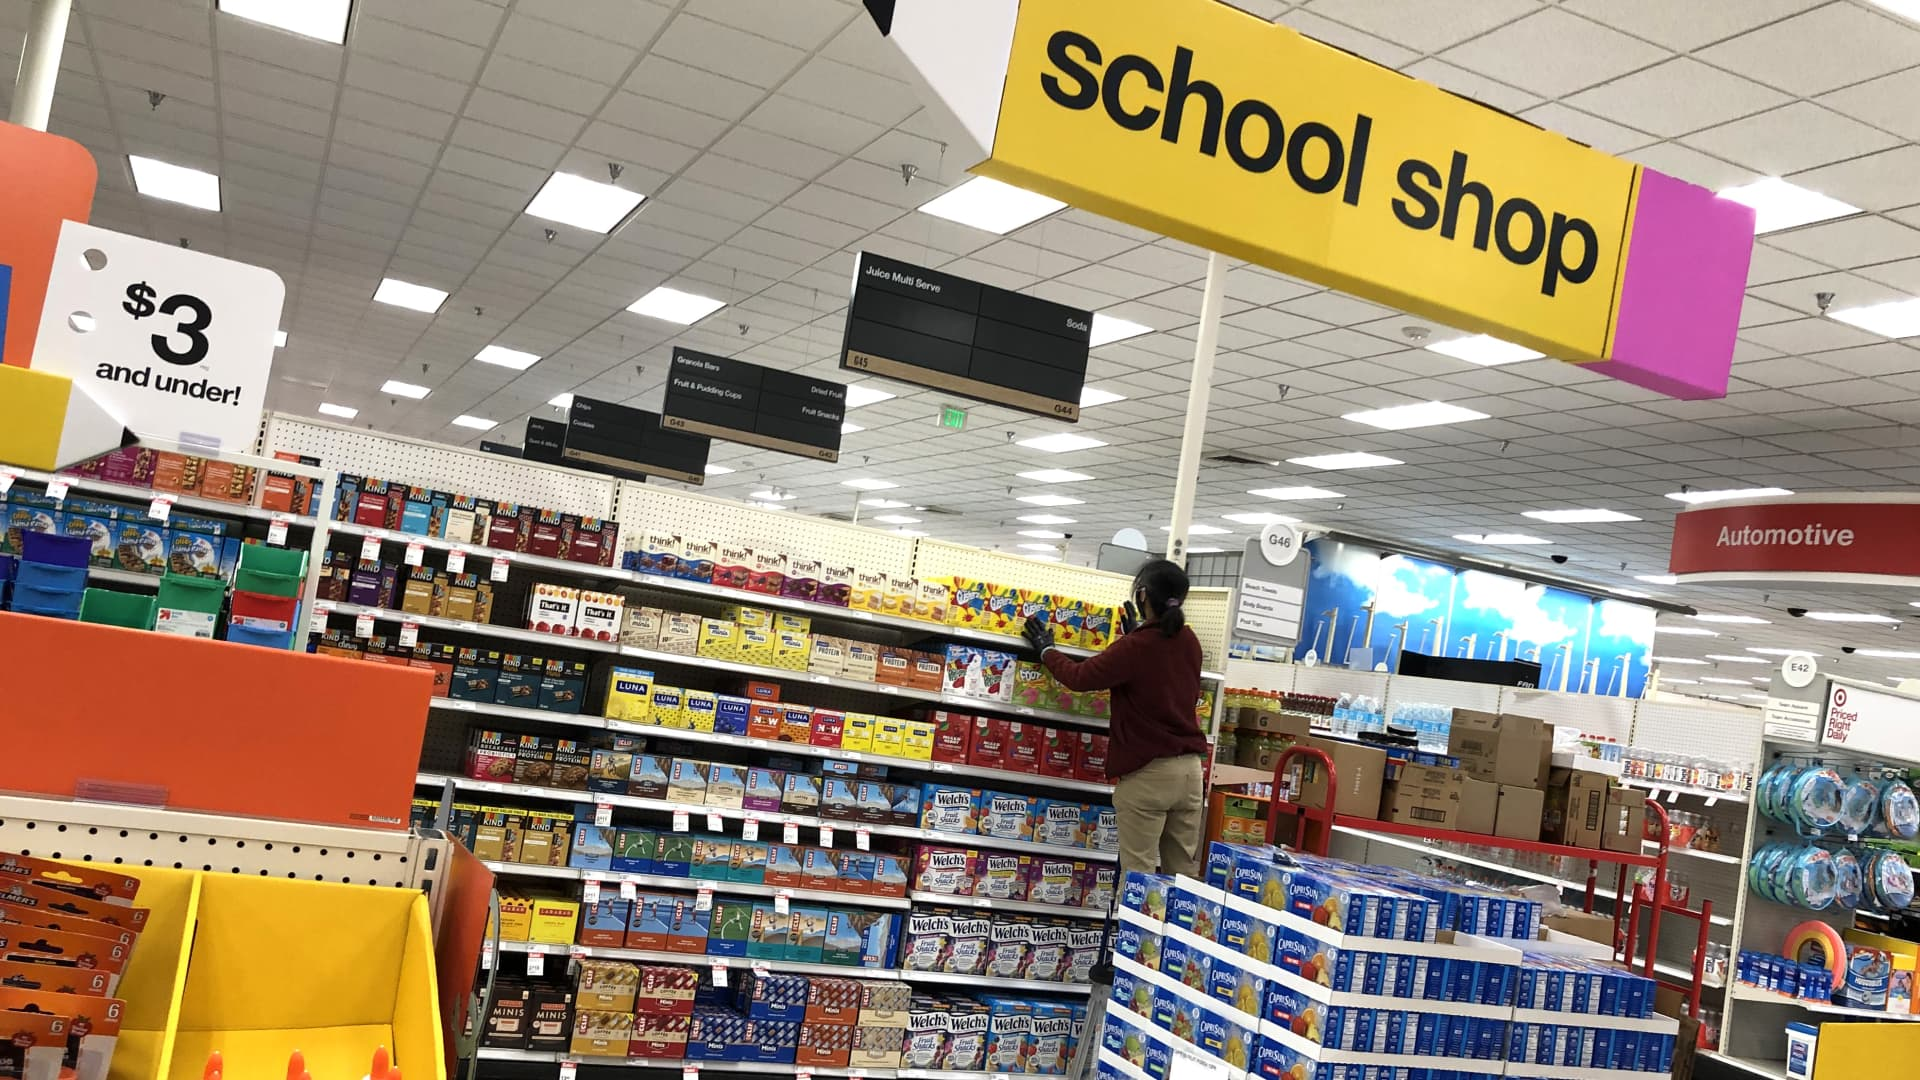 A worker stocks shelves of back-to-school supplies at a Target store on August 03, 2020 in Colma, California.